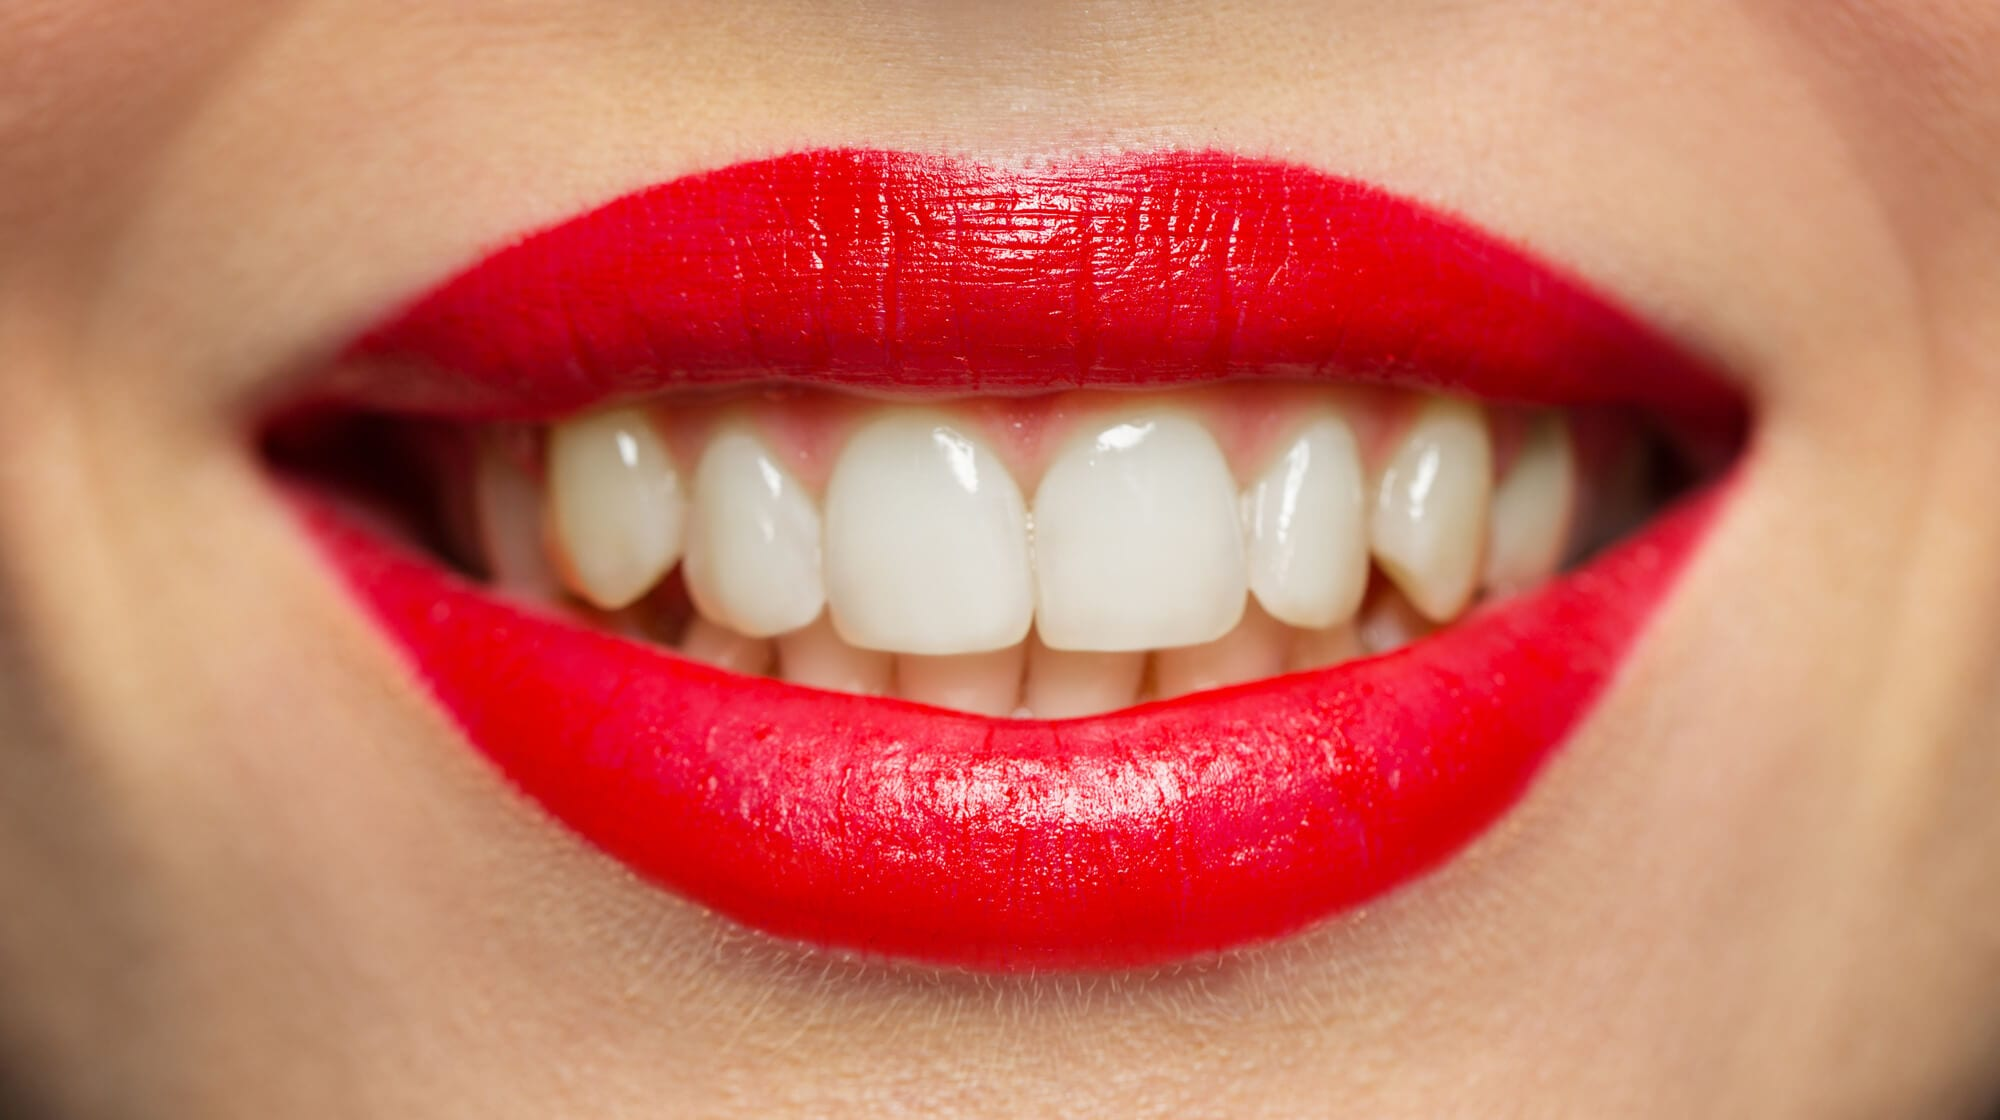 lips or mouth of smiling woman with red lipstick